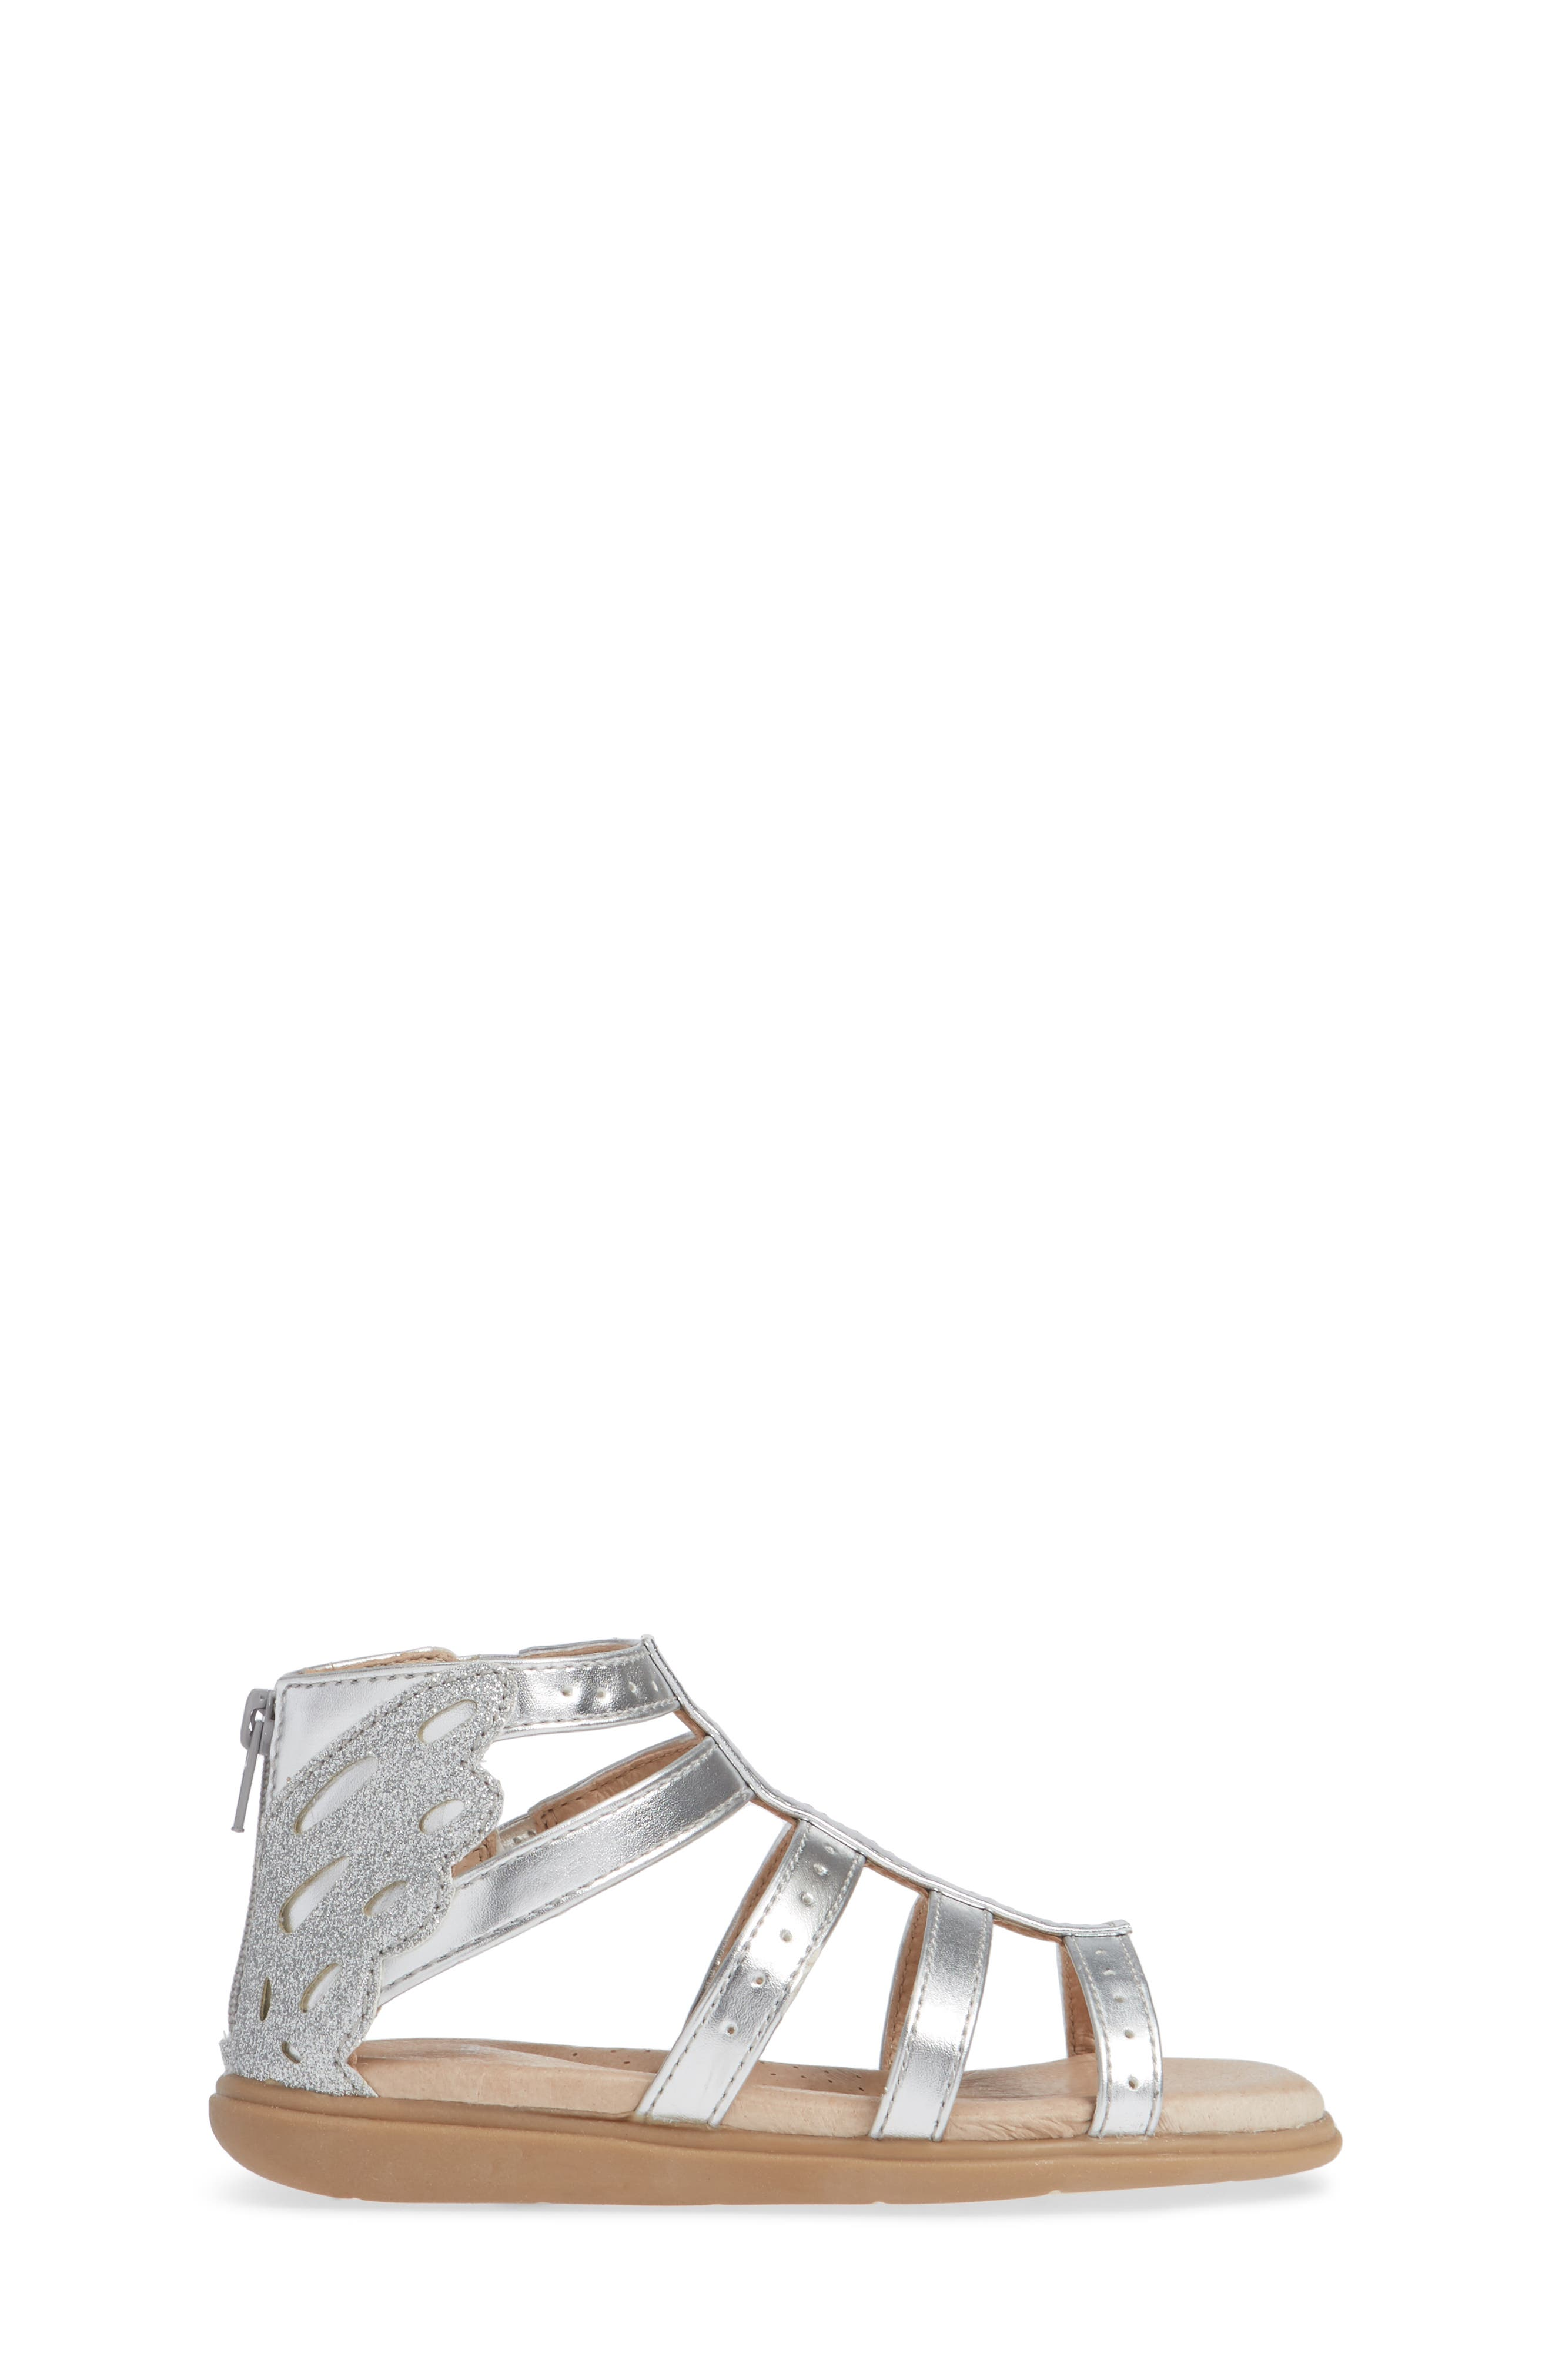 SOLE PLAY, Camille Metallic Sandal, Alternate thumbnail 3, color, SILVER